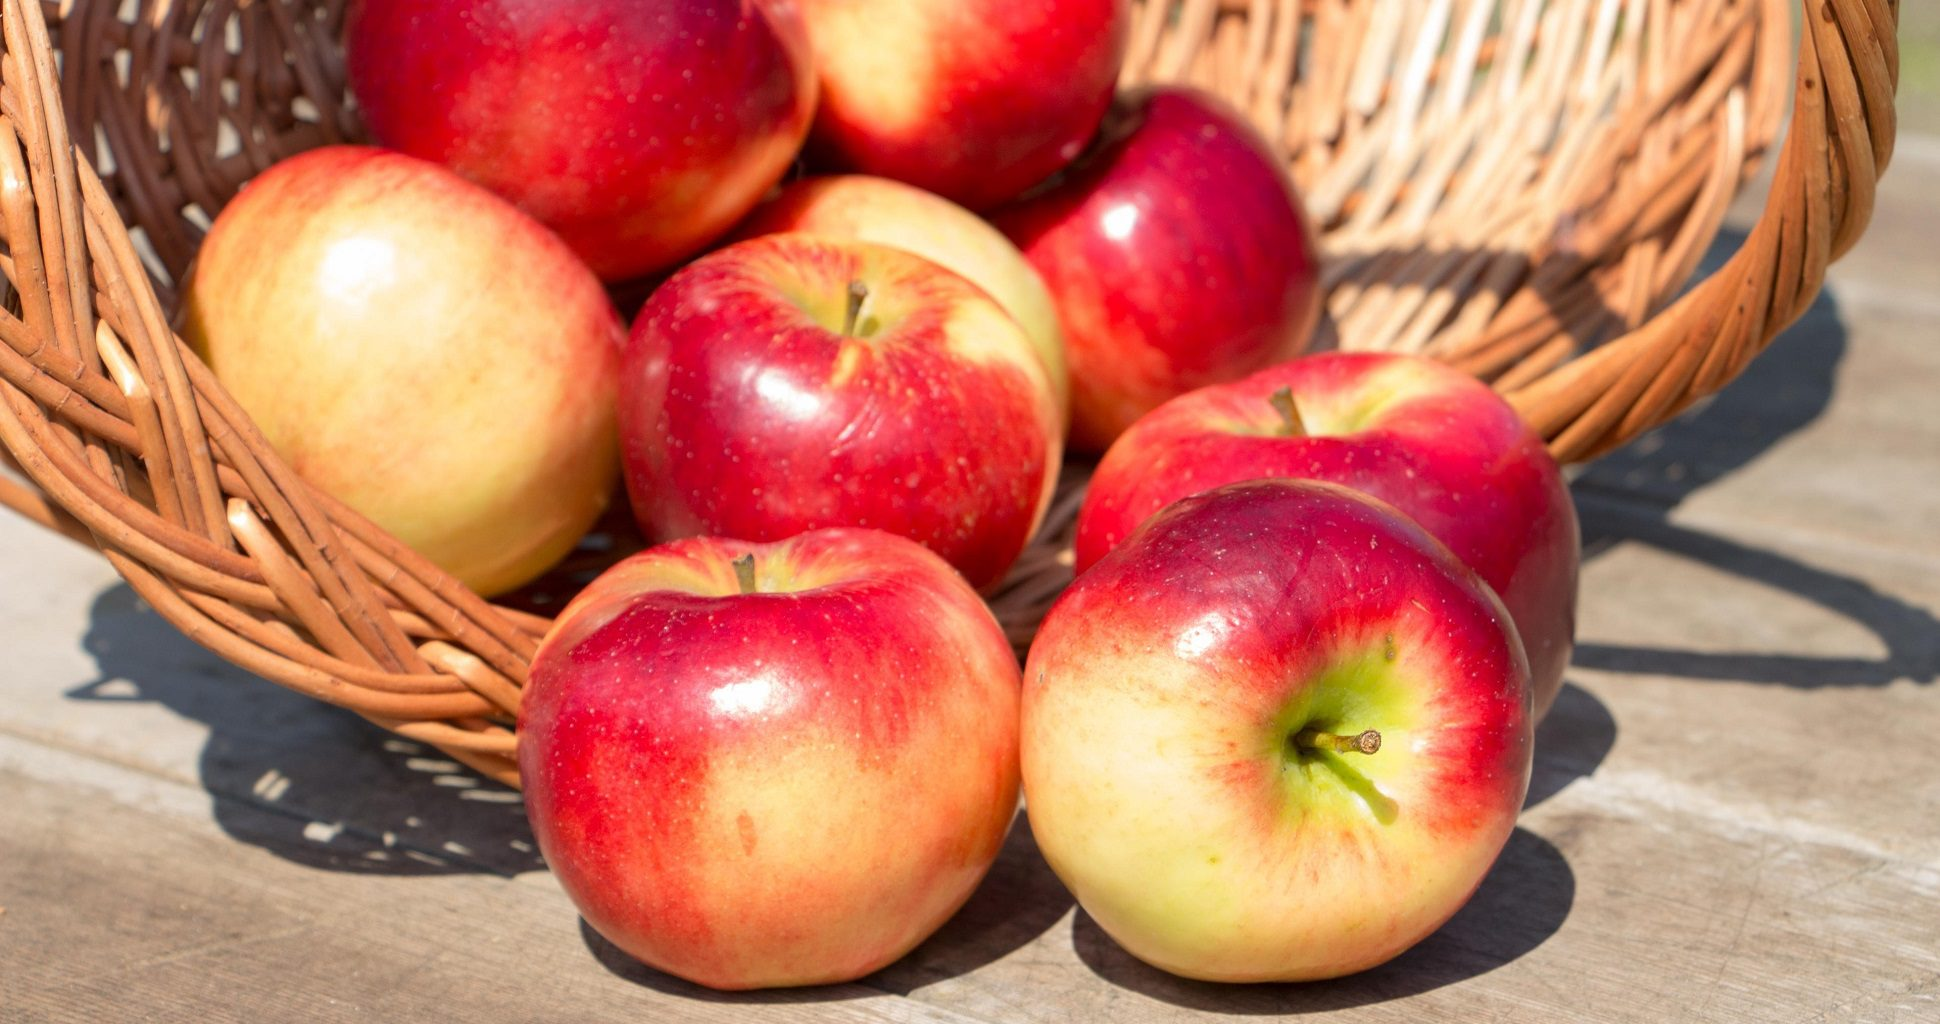 How To Store Apples For Long Shelf Life?